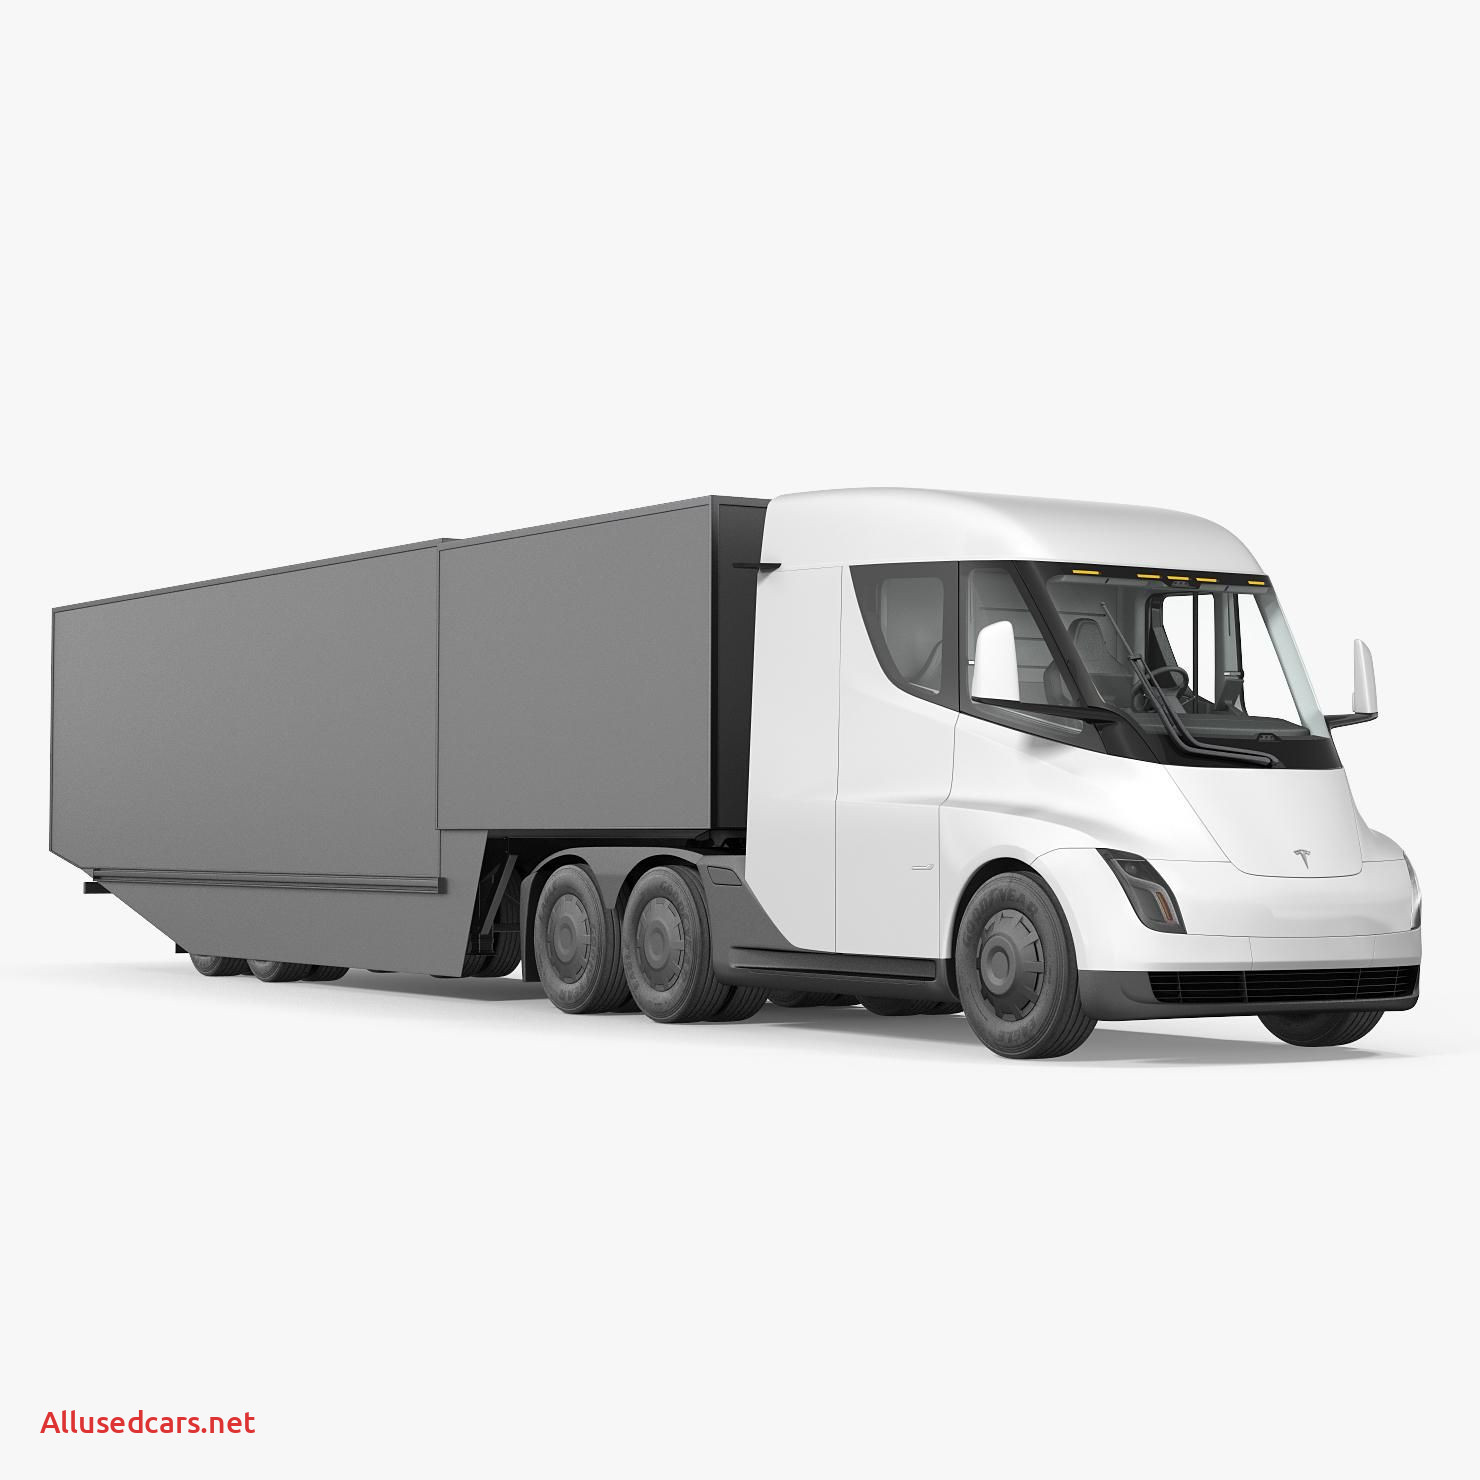 Tesla Truck Awesome Electric Semi Truck Tesla with Trailer Simple Interior 3d